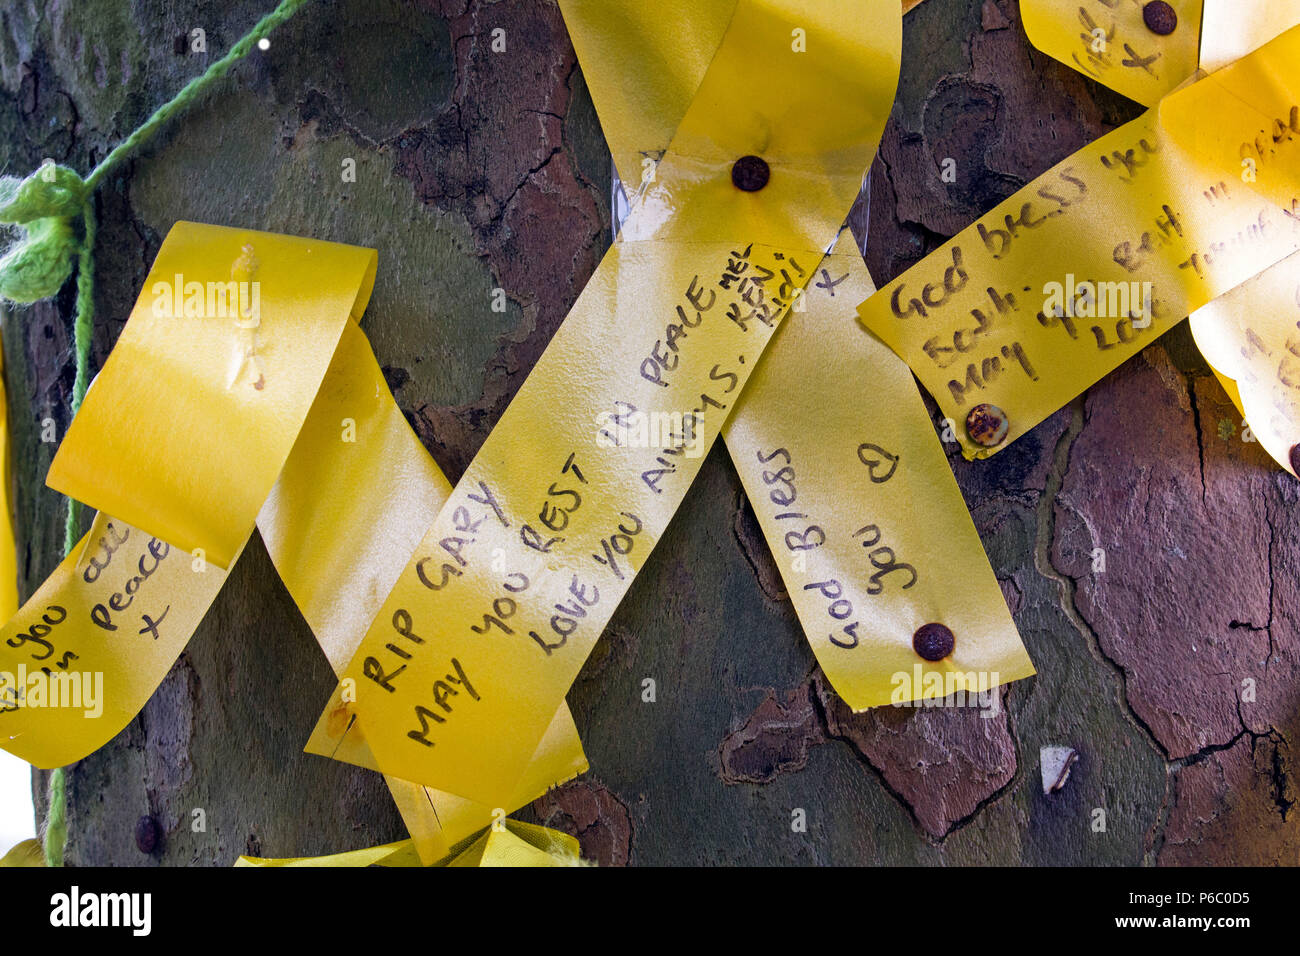 The first anniversary of the Grenfell Tower fire which claimed 72 lives. Yellow ribbons pinned to trees. South Kensington, London, UK, 14th June 2018. - Stock Image